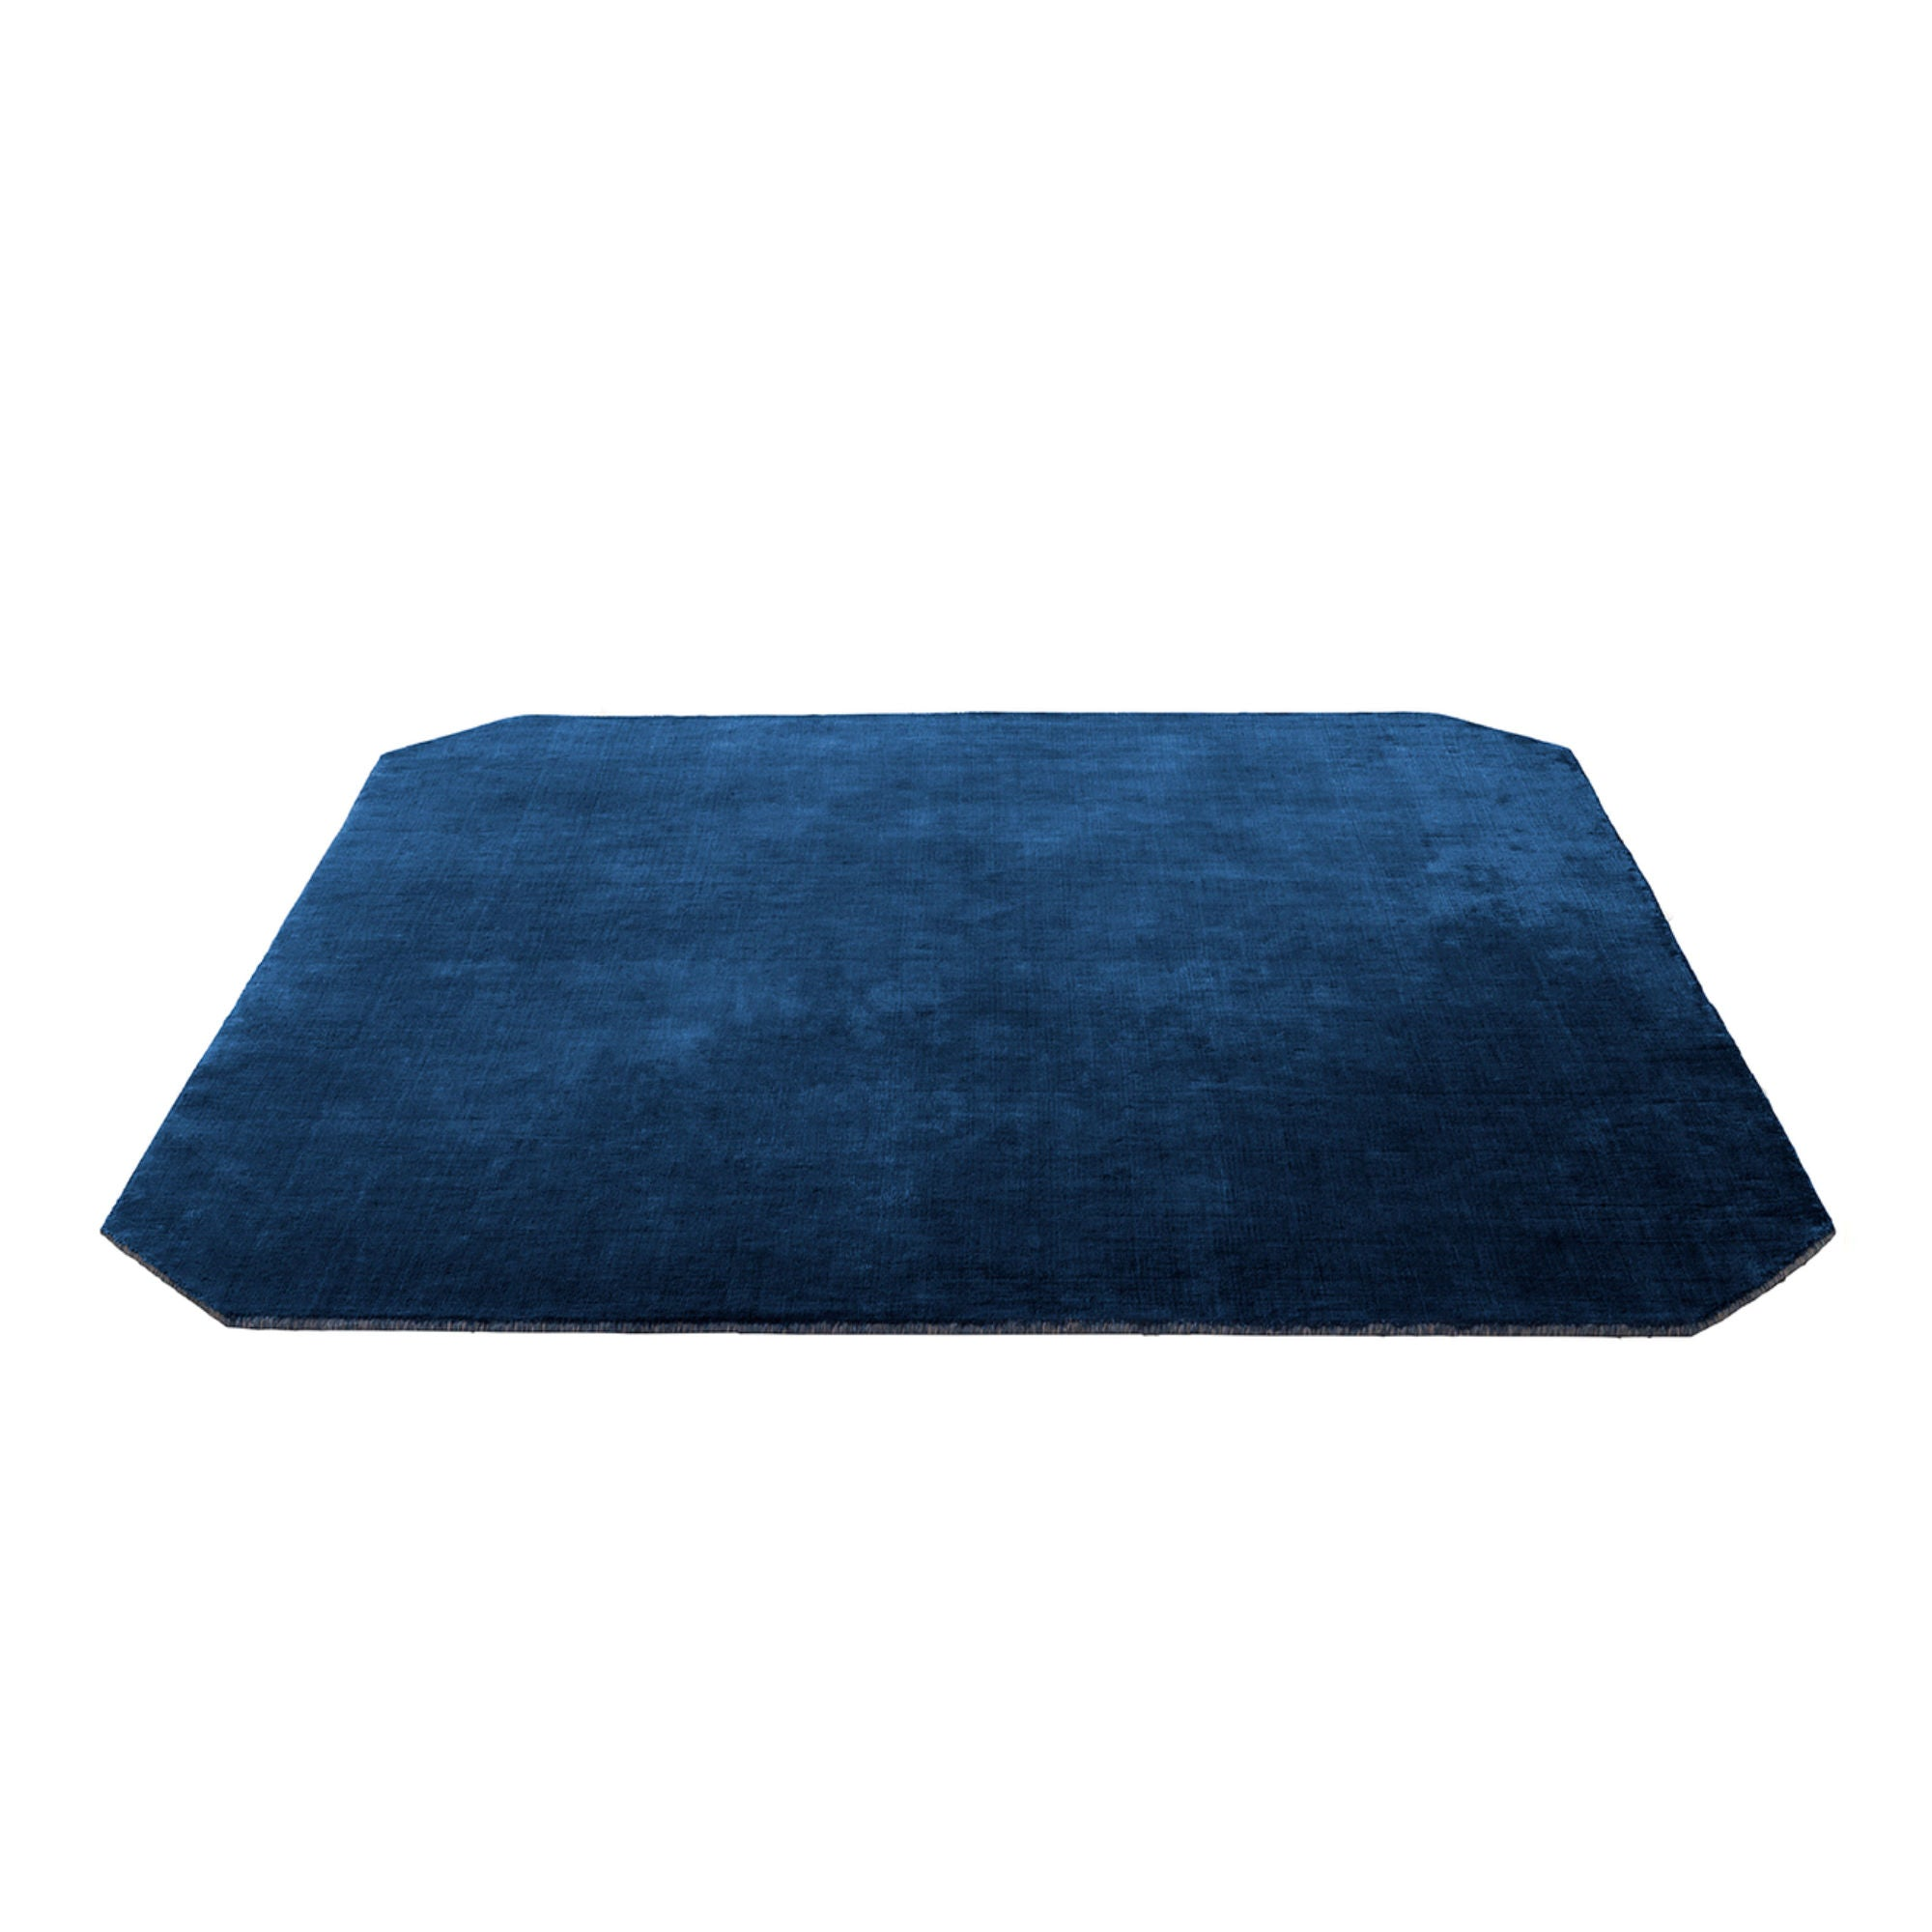 AP6 The Moor Rug 240*240, blue midnight